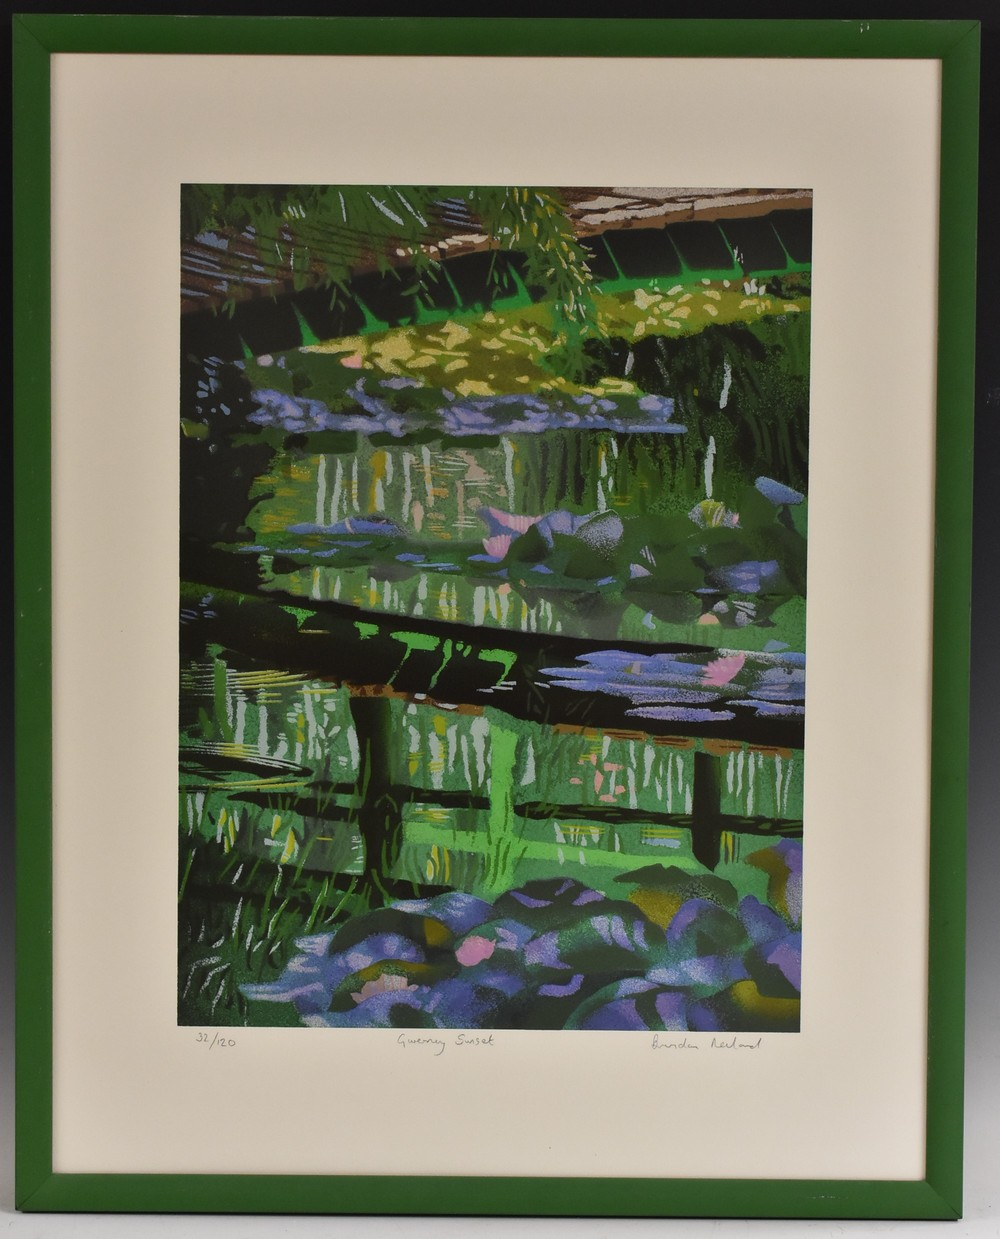 Brendan Newland, by and after, Giverny Sunset, signed, titled, and numbered in pencil to margin,